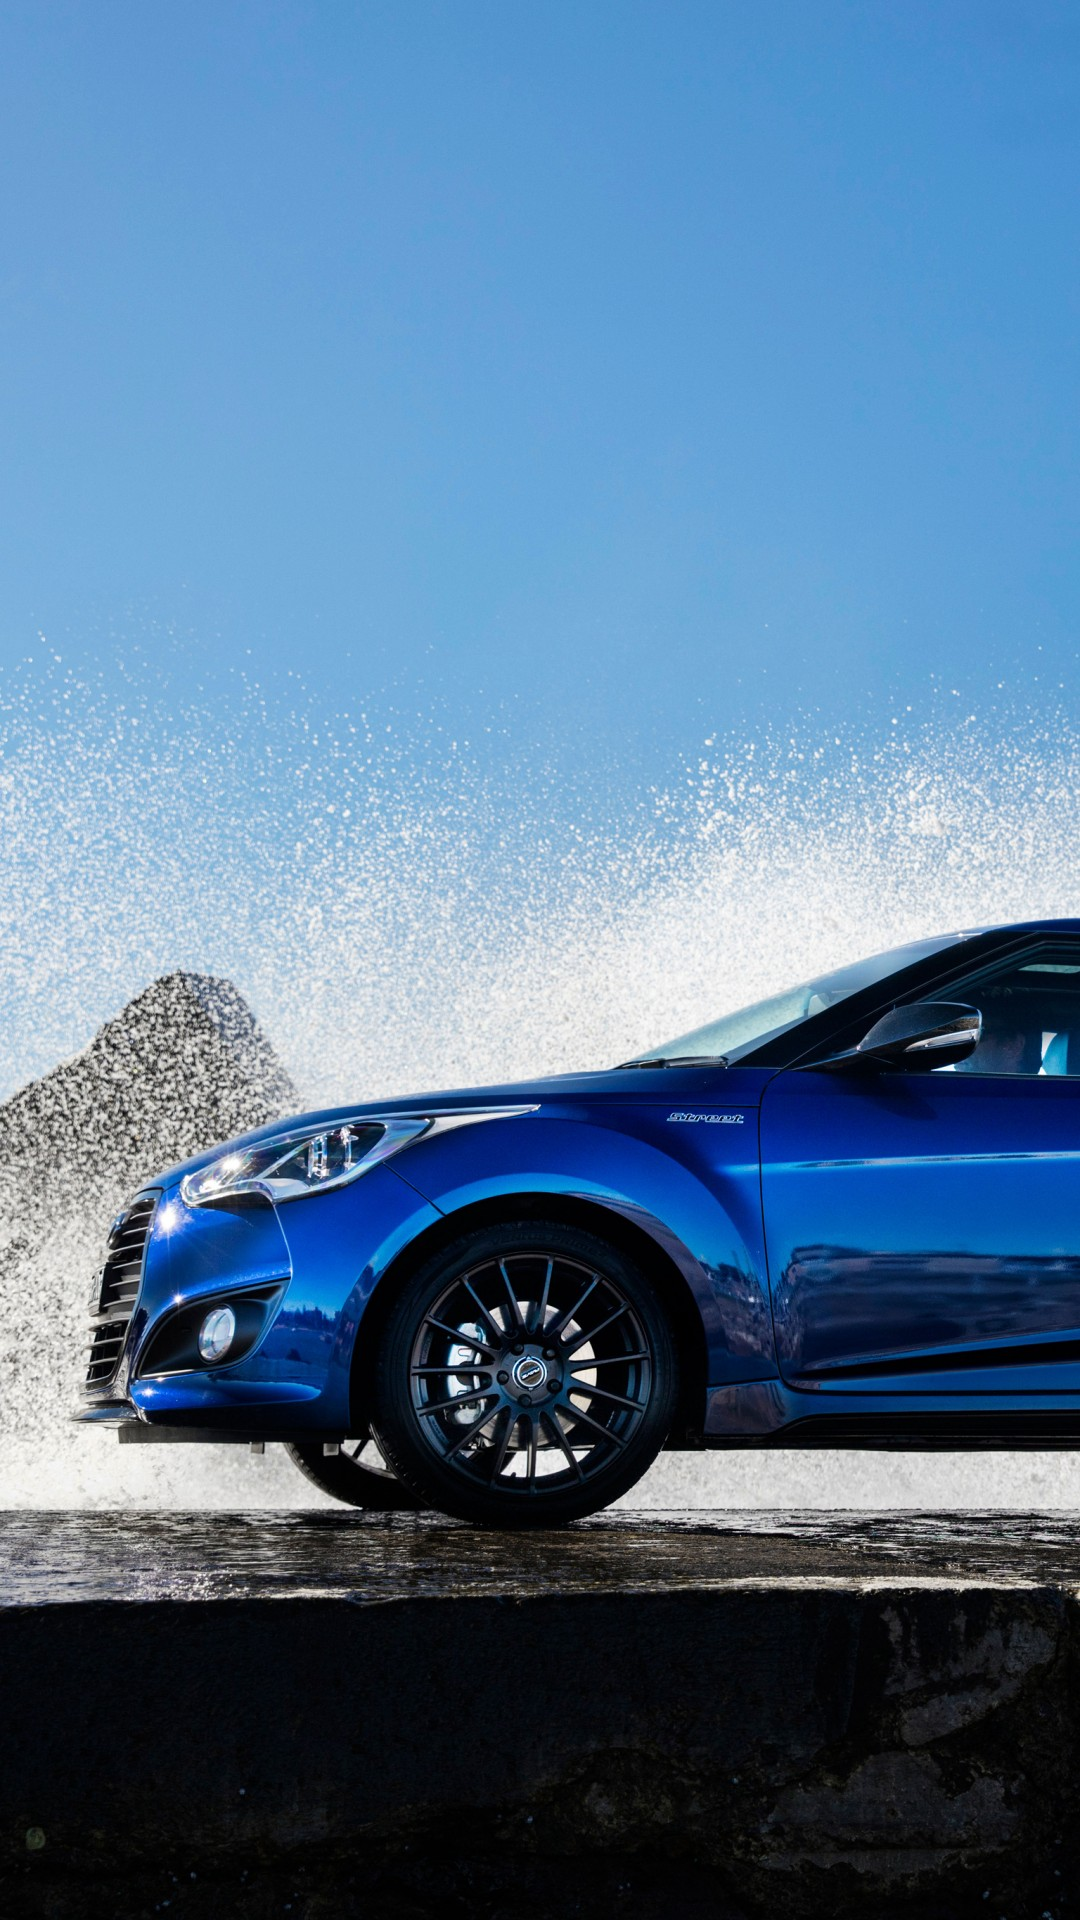 Wallpaper Hyundai Veloster Quot Street Quot Turbo Blue Cars